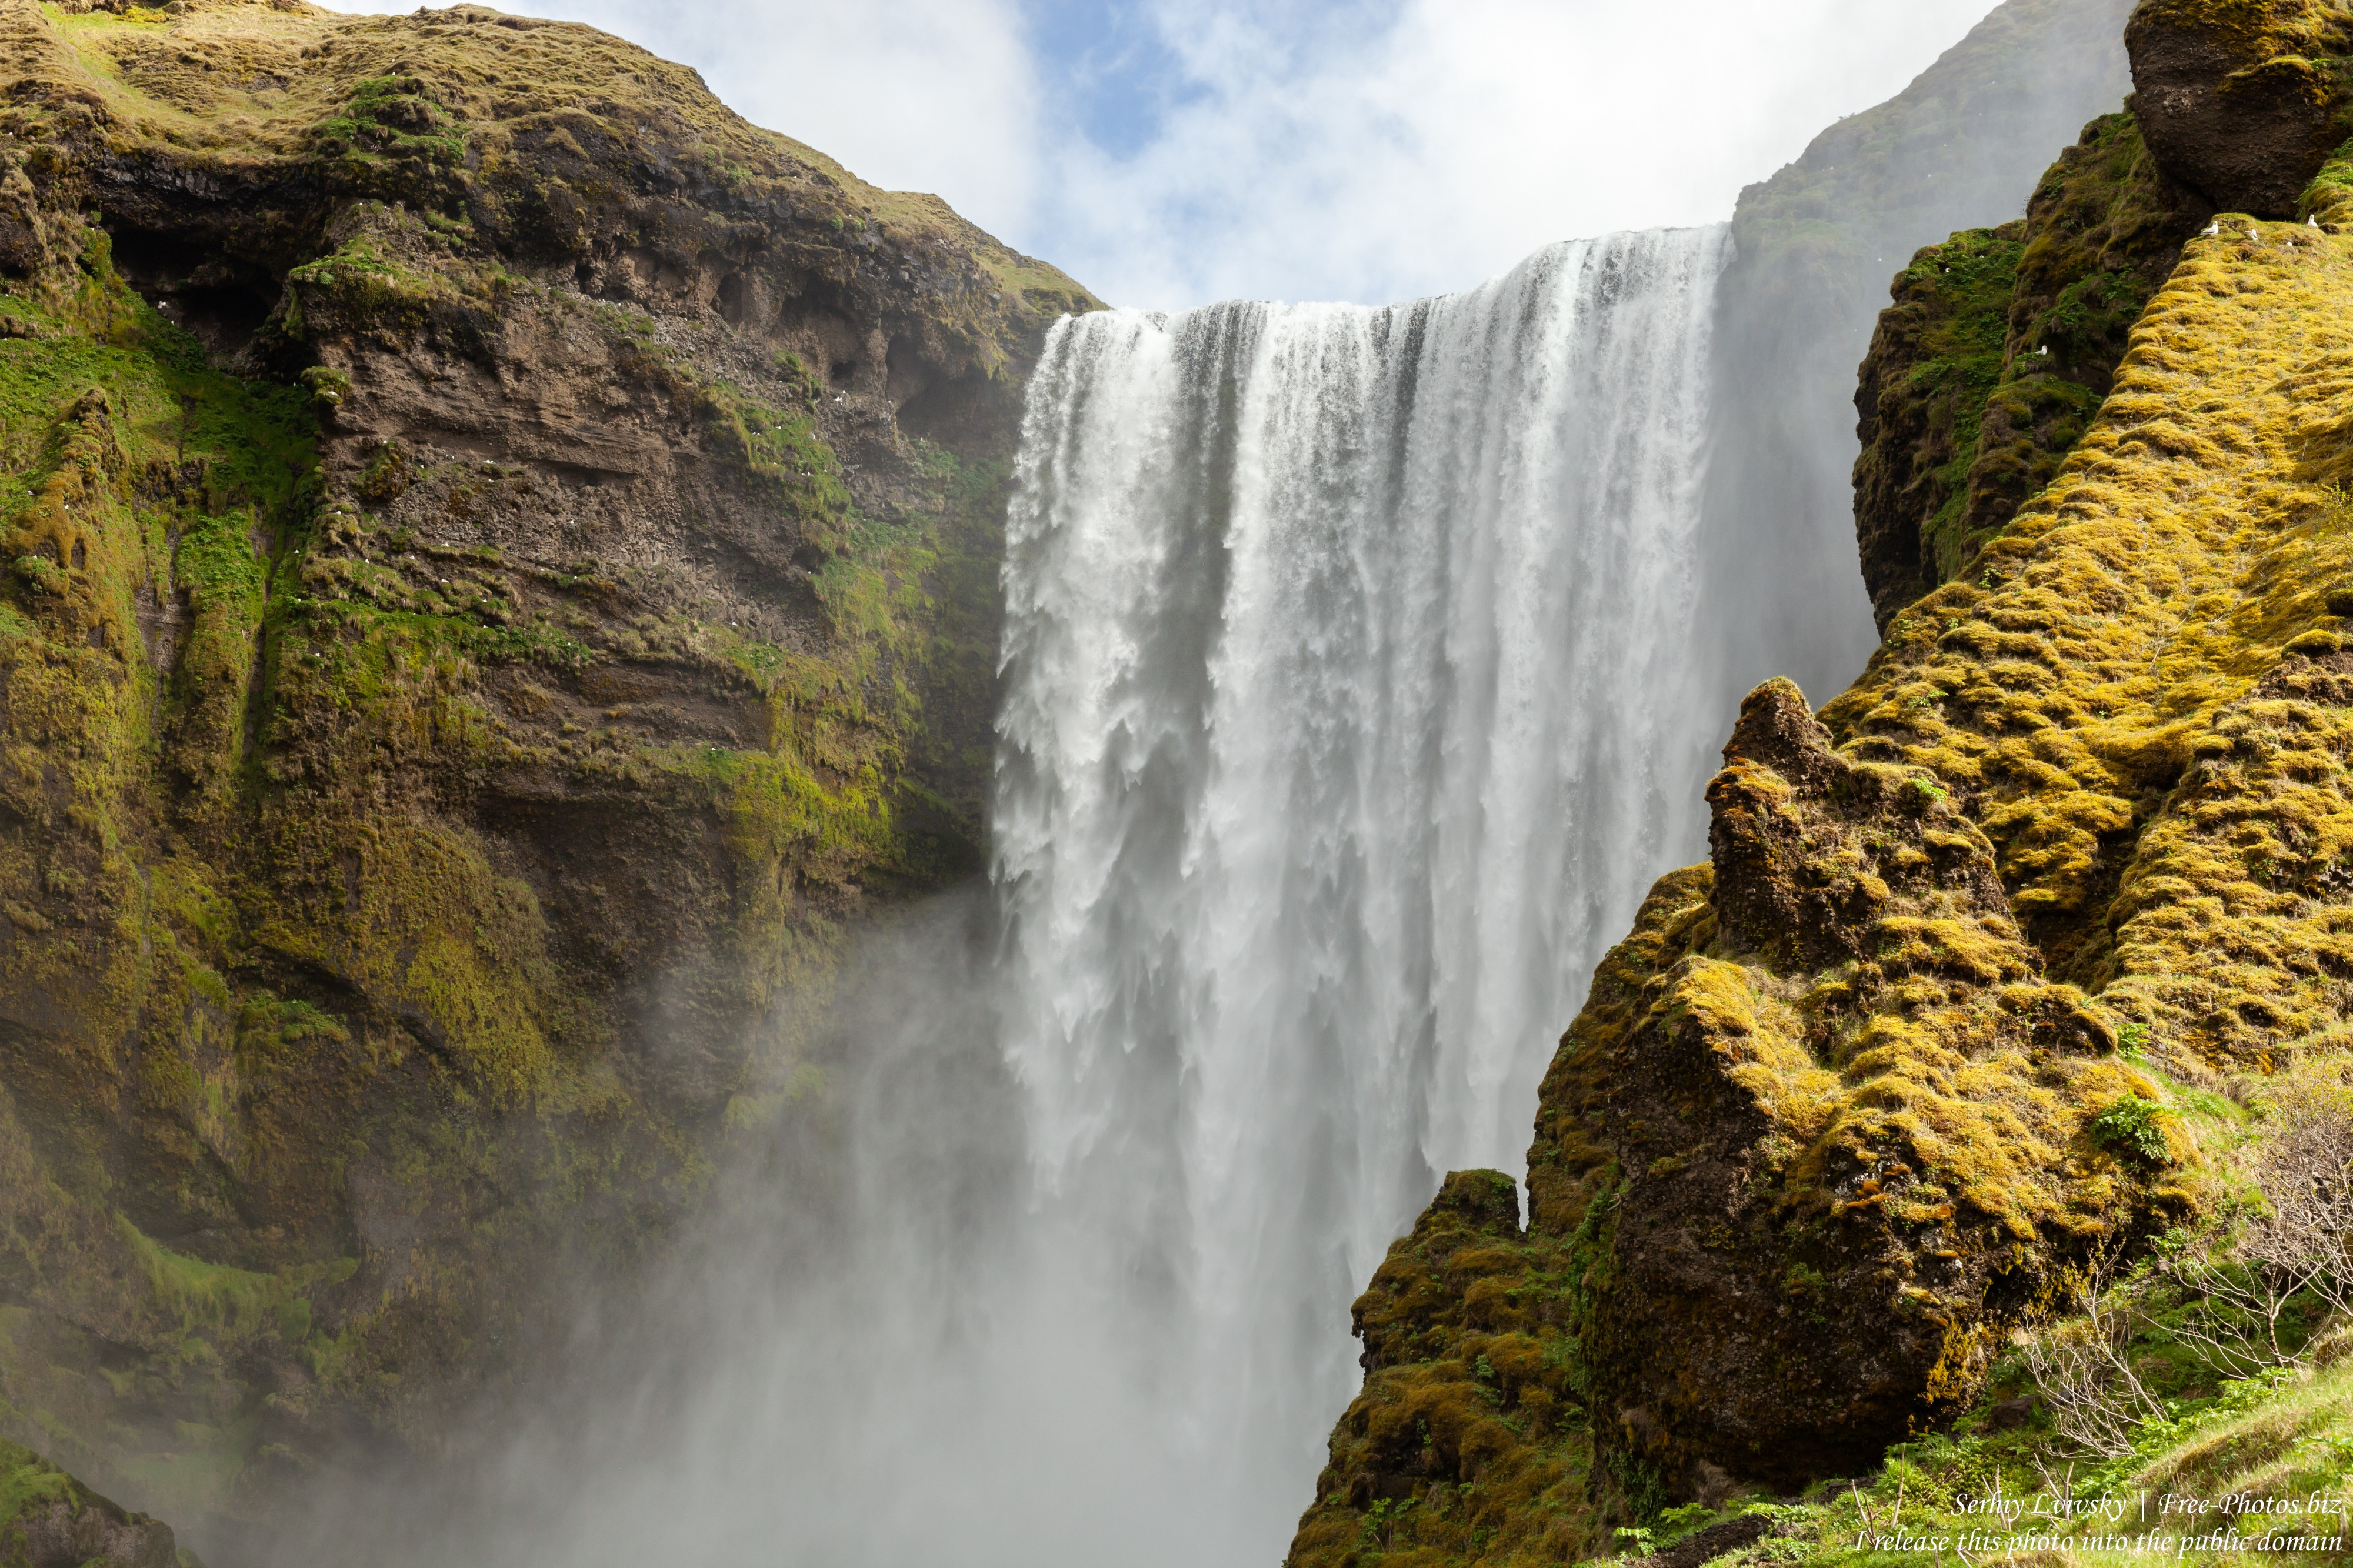 Skogafoss, Iceland, photographed in May 2019 by Serhiy Lvivsky, picture 2